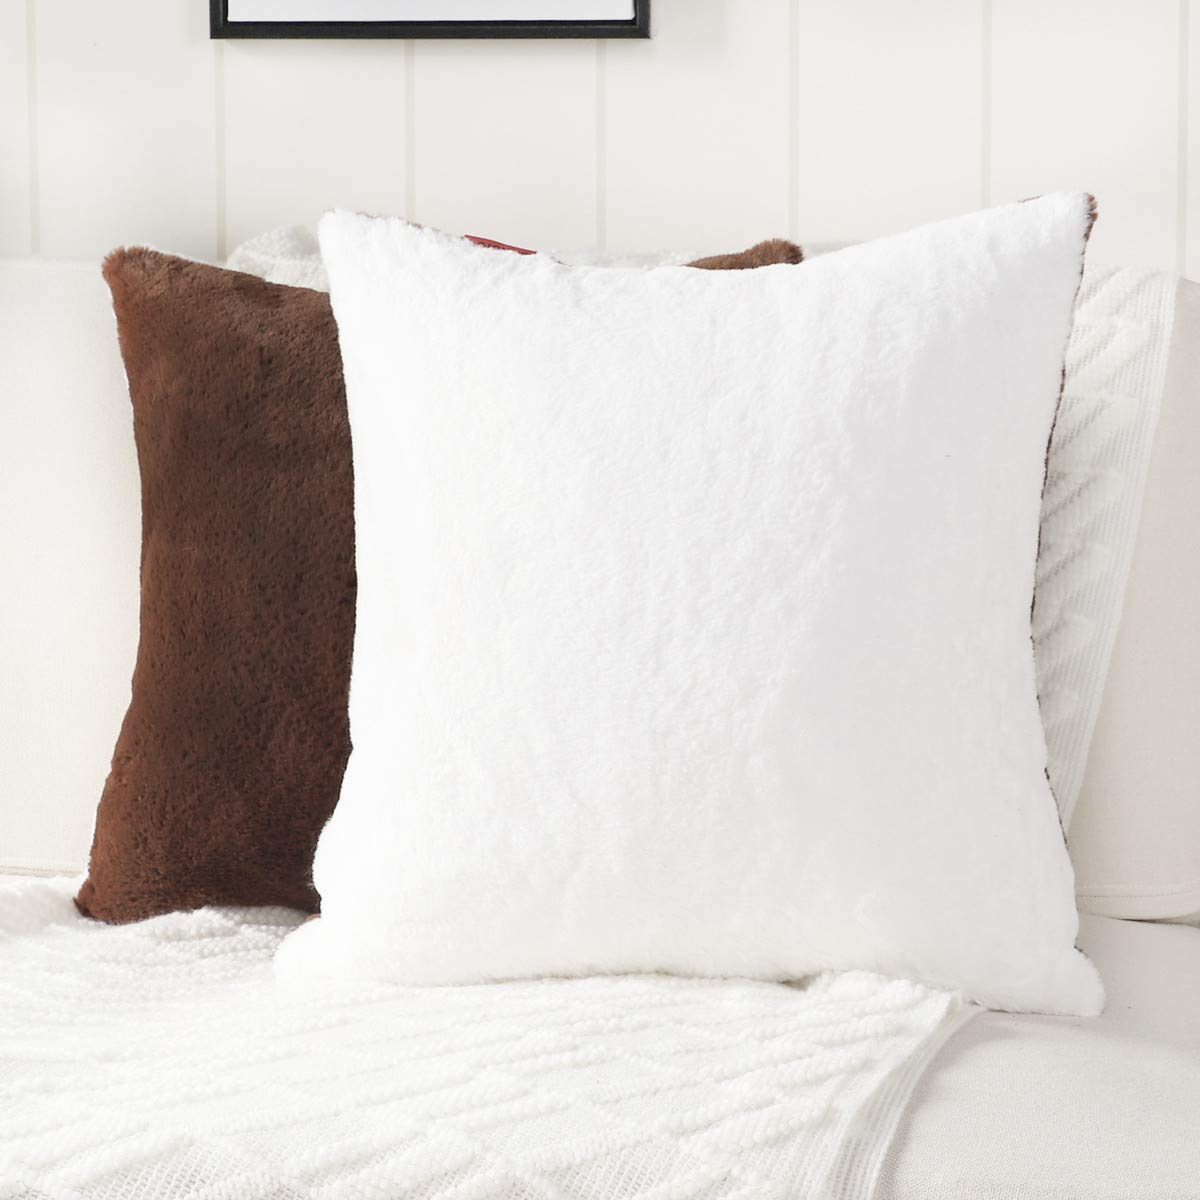 Mandioo Pack of 2 Two-Sided White and Brown Faux Soft Fur Fuzzy Cozy Decorative Throw Pillow Covers Set Cushion Cases Pillowcases for Sofa Bedroom Car 18x18 Inches